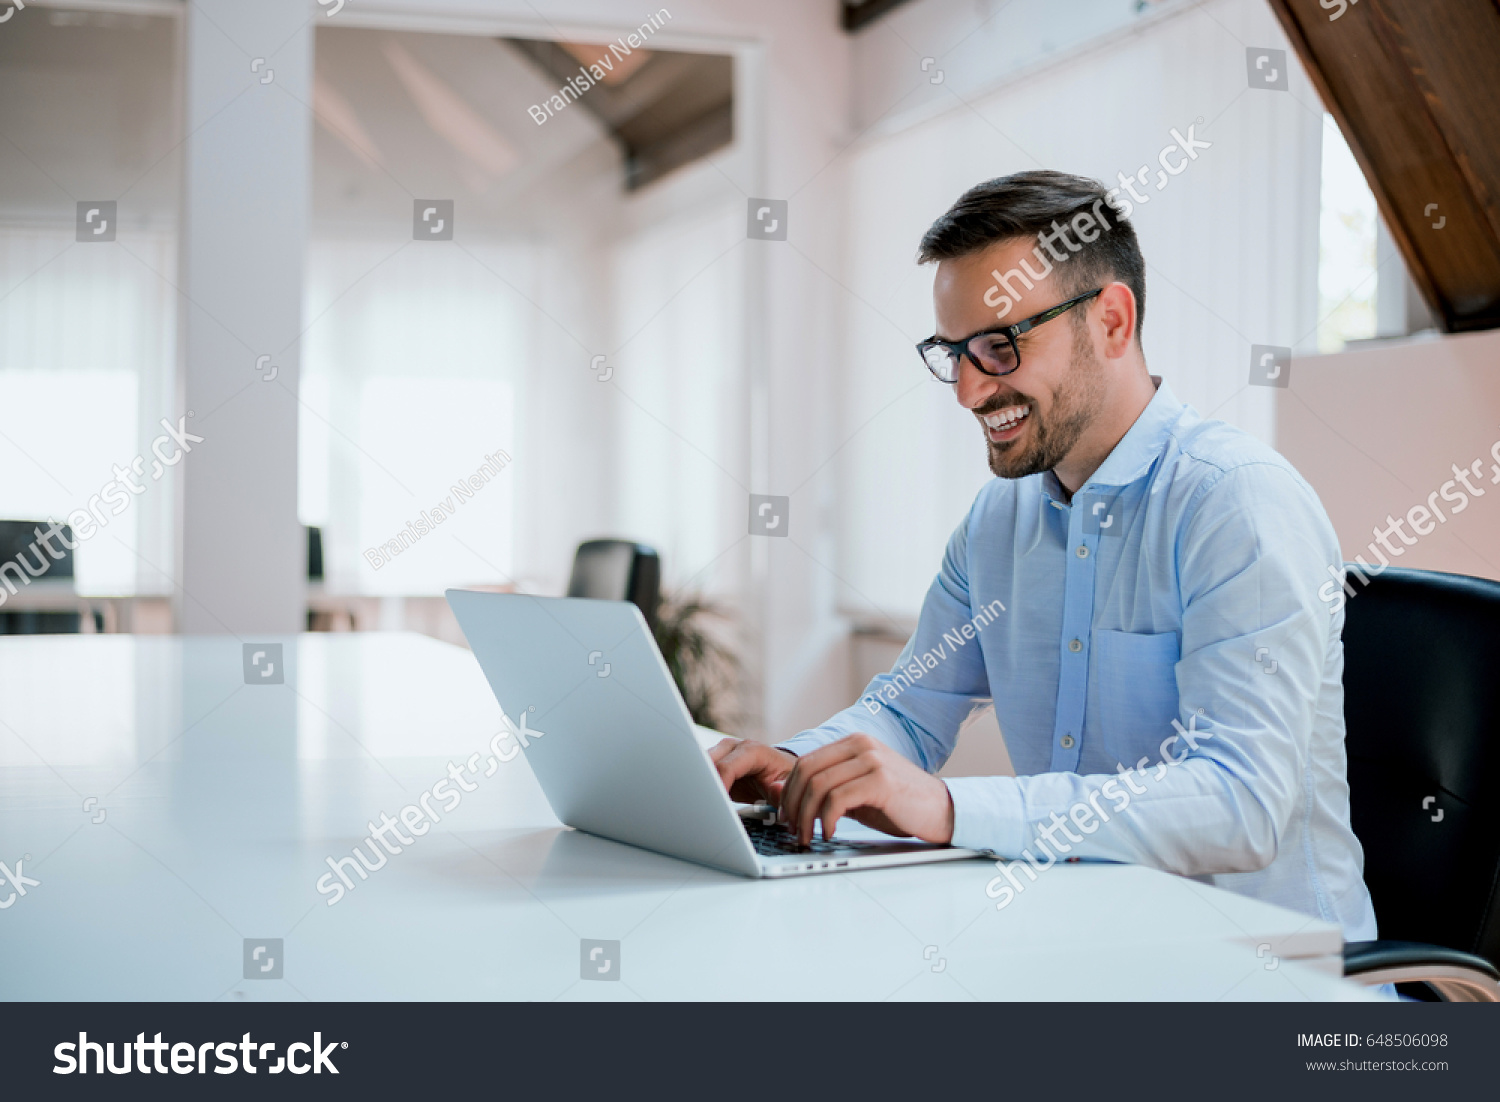 Portrait of young man sitting at his desk in the office #648506098